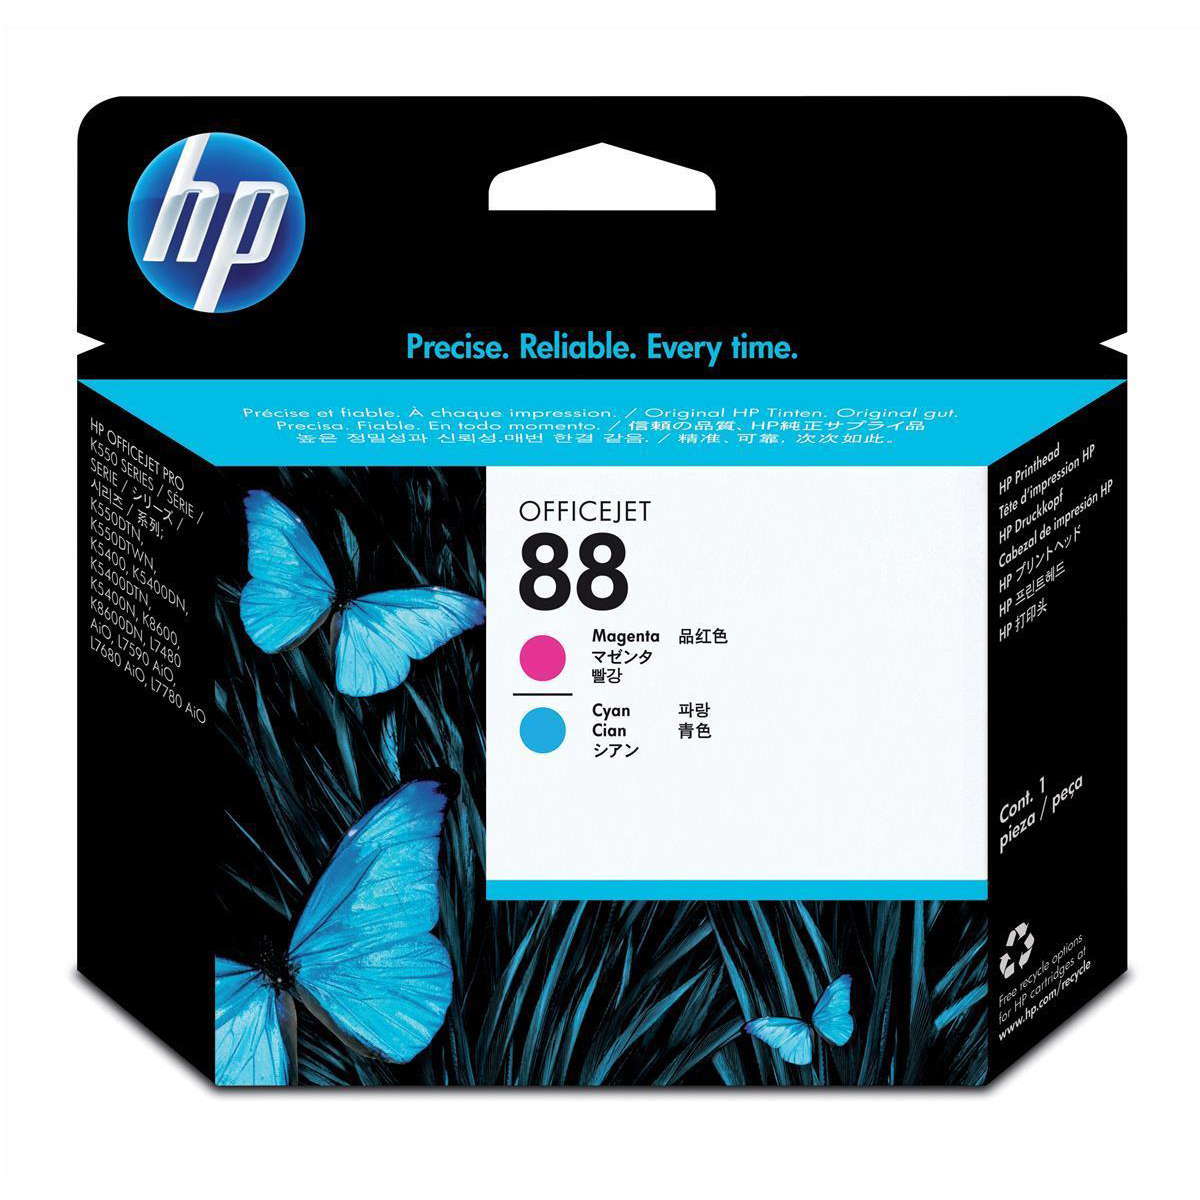 Hewlett Packard [HP] No.88 Inkjet Printhead Page Life 41500pp Cyan & Magenta Ref C9382A